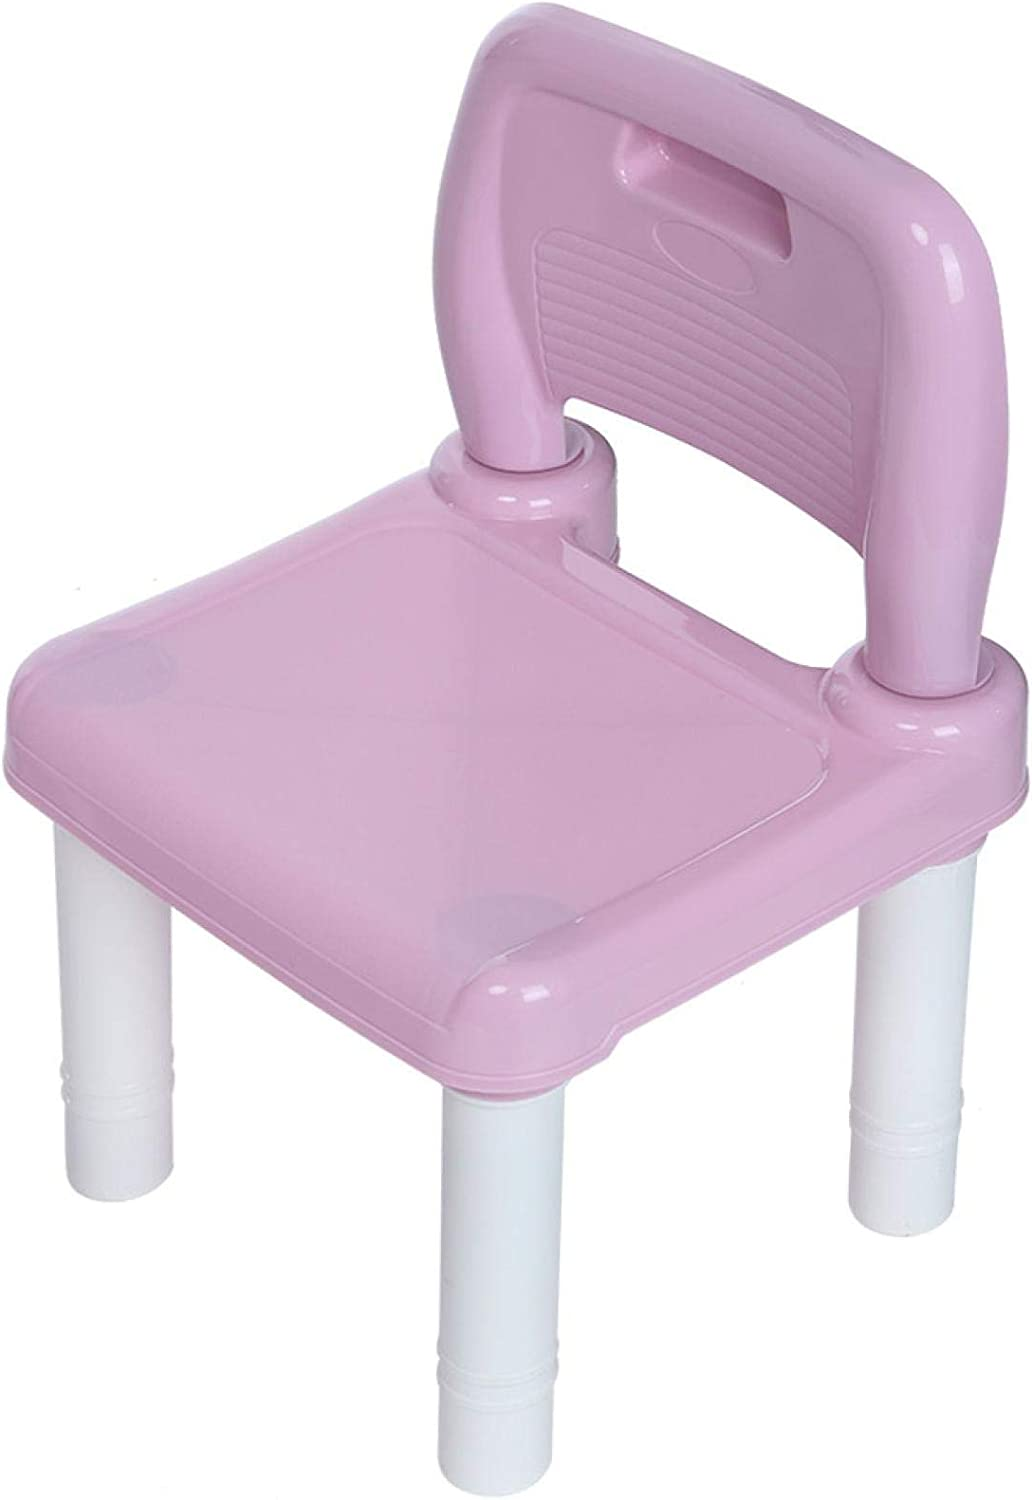 Strong Bearing Capacity TOUNTLETS Kids Activity Table and Chairs Set Pink Learning Dining Children Furniture Accessories Playroom Toddler Activity Chair Best for Toddlers Reading Lightweight